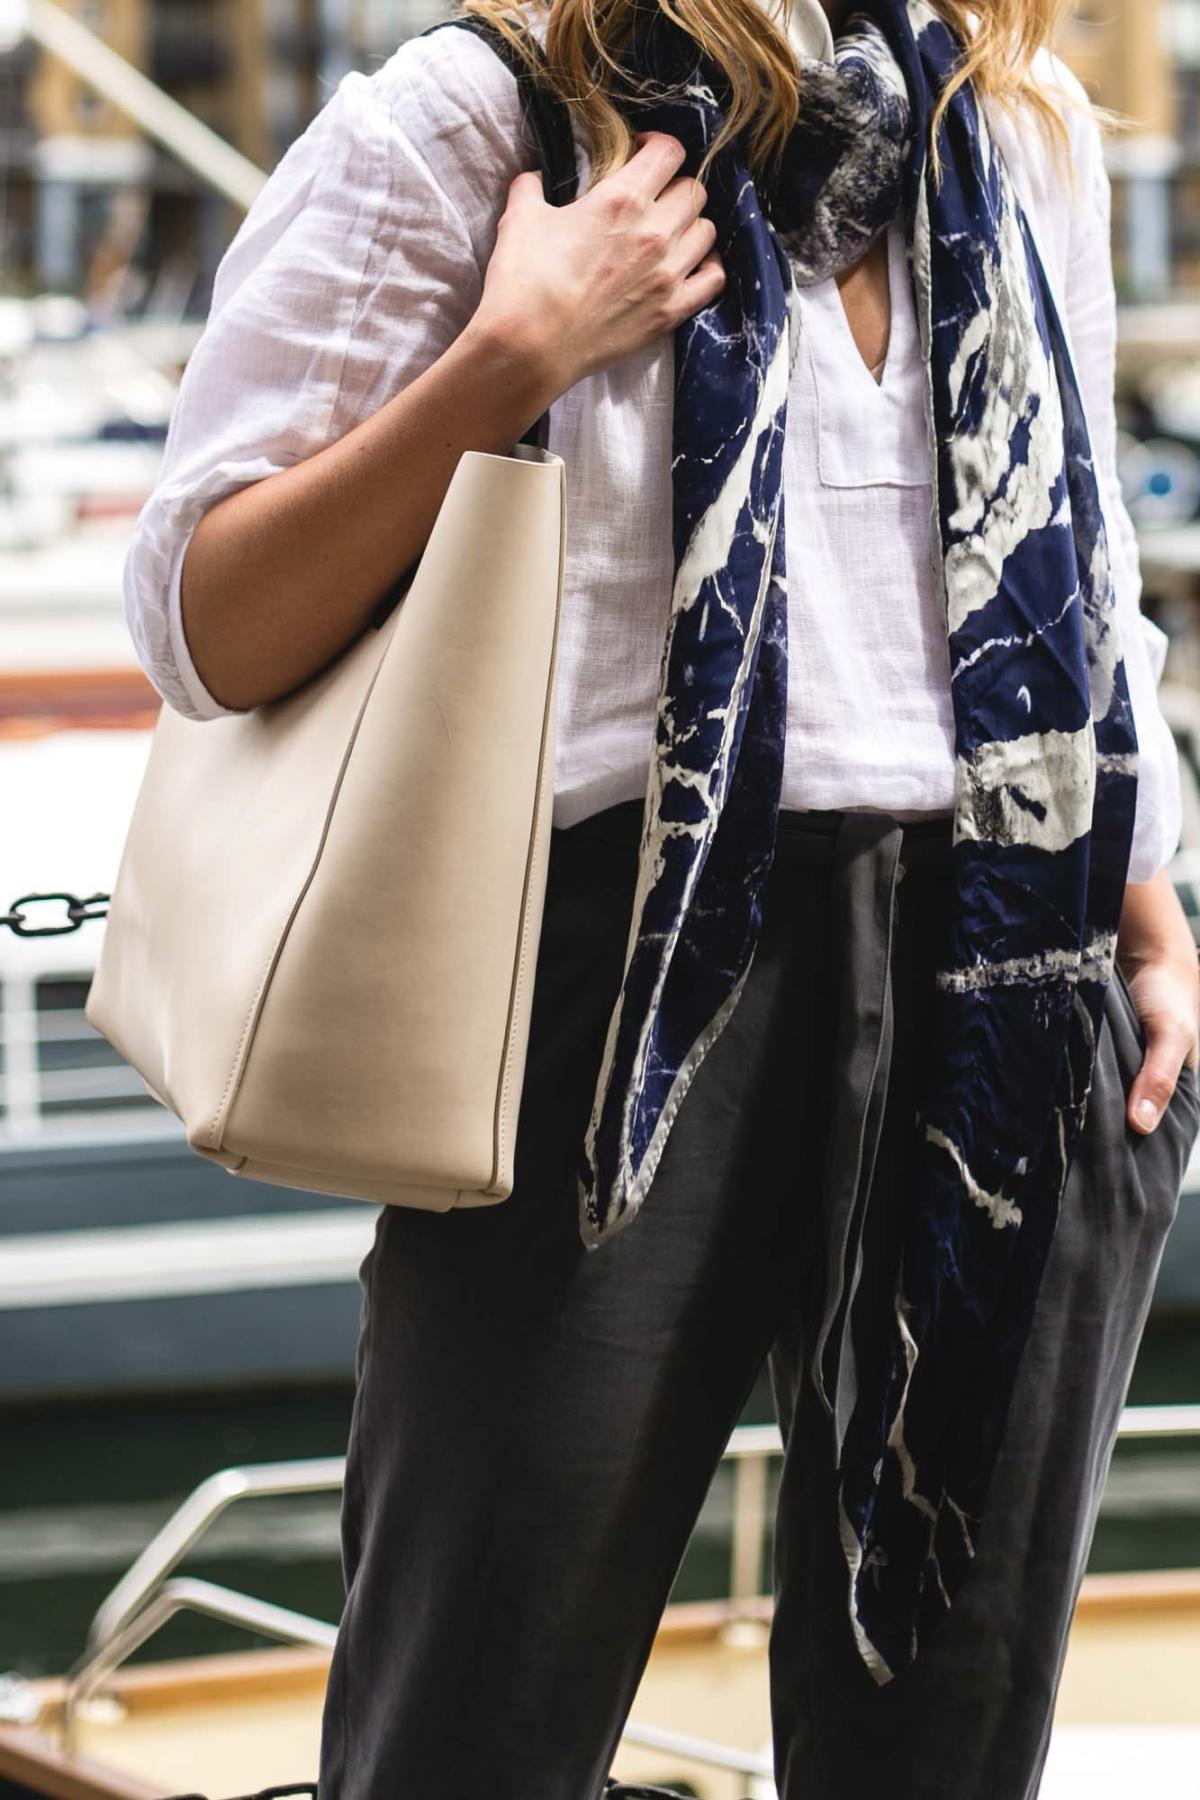 Jaeger off white blazer, grey trousers, silk scarf in blue print, white linen shirt, chic work outfit